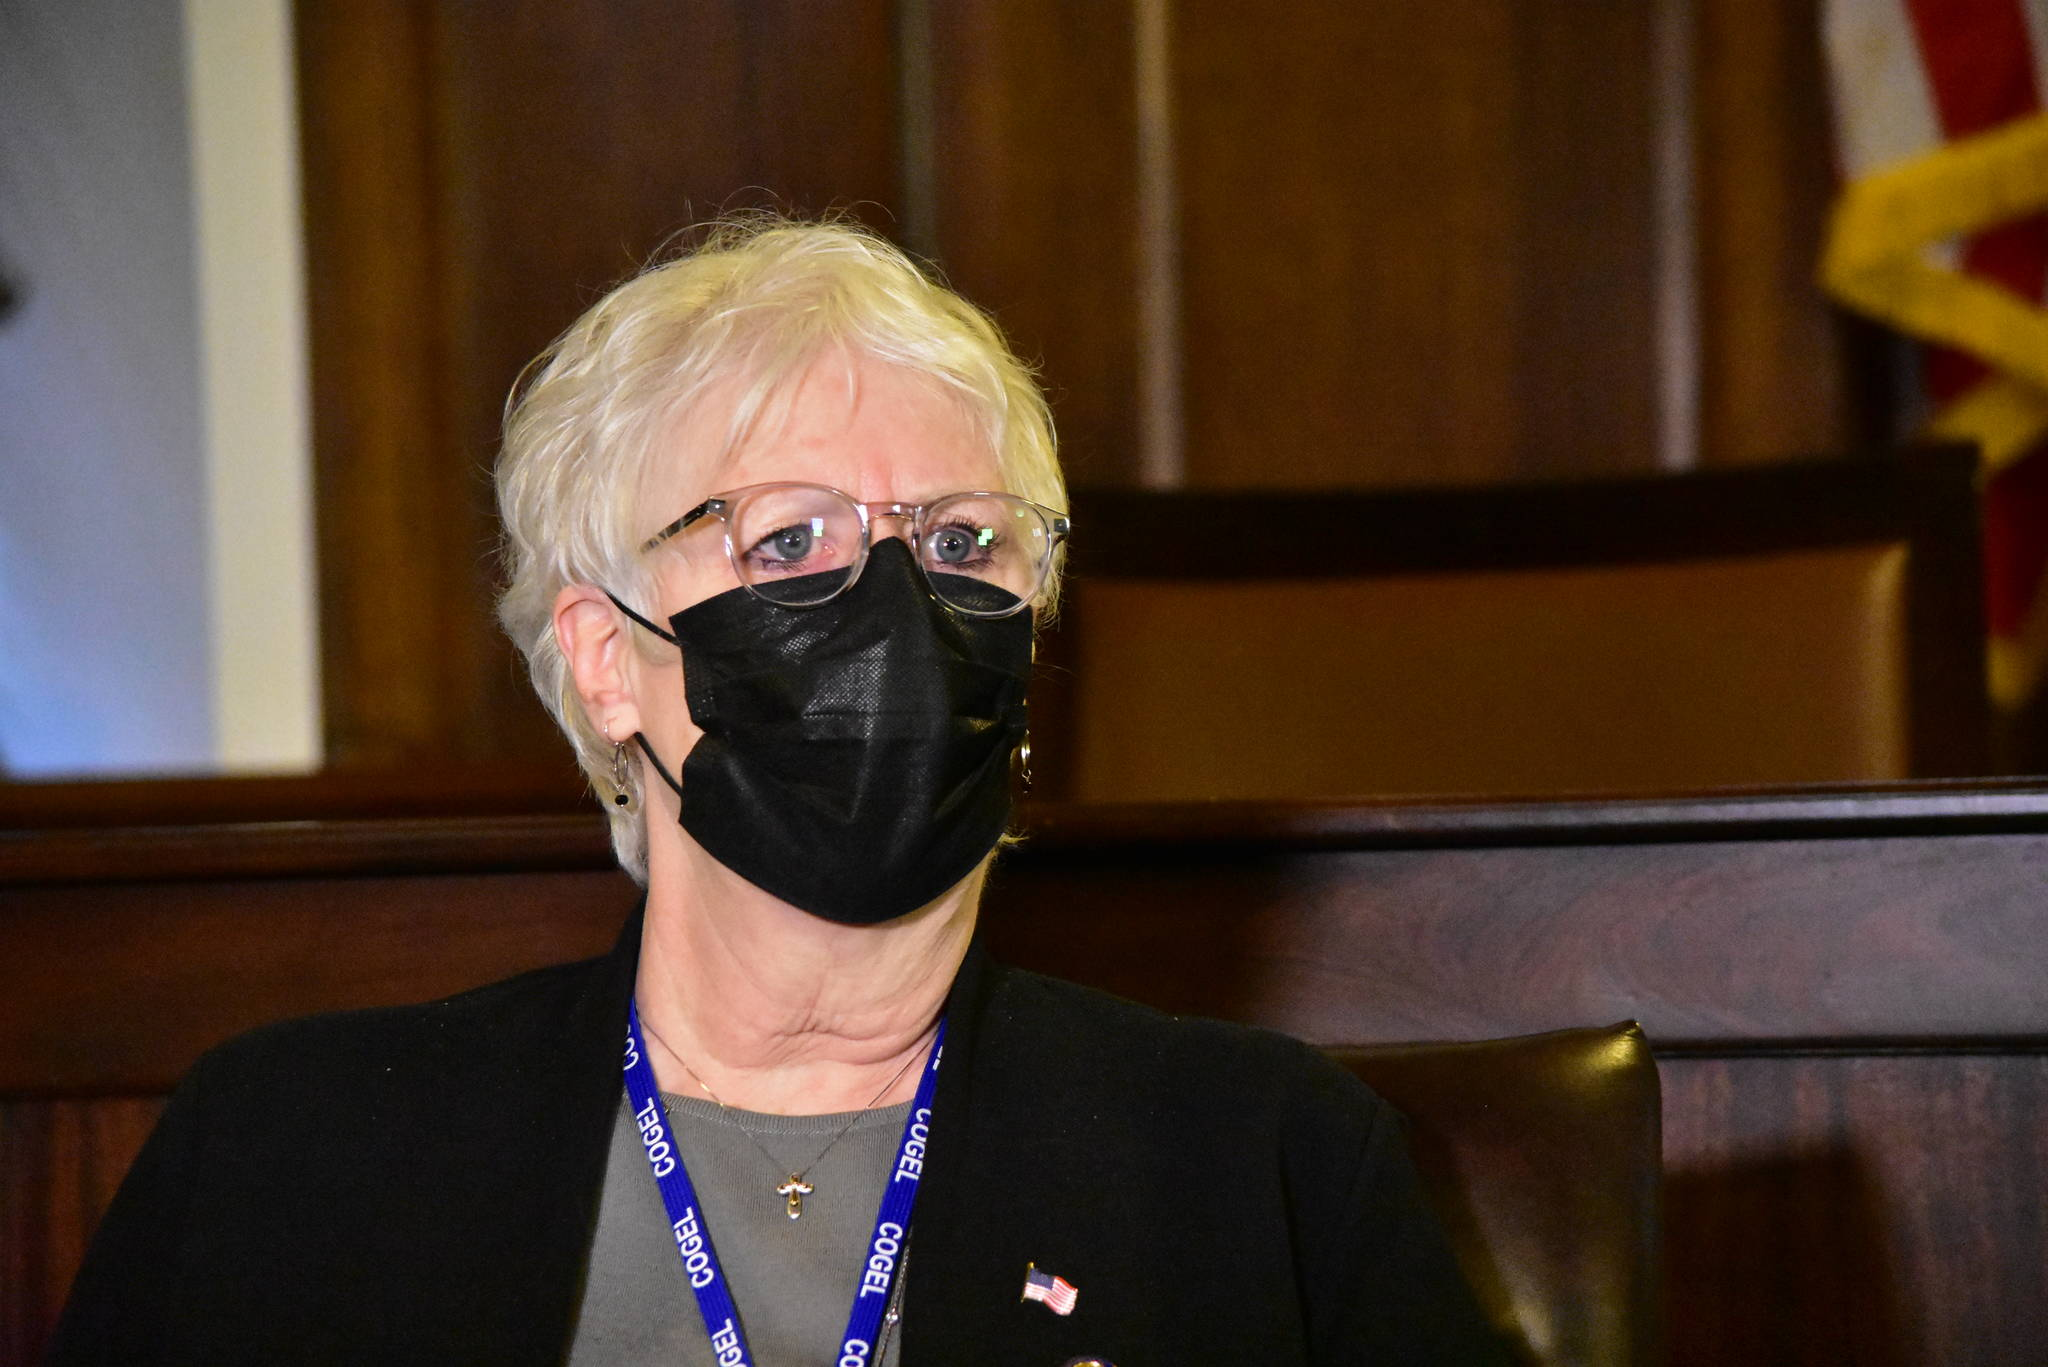 Speaker of the House Rep. Louise Stutes, R-Kodiak, speaks with reporters on Thursday, Feb. 18, 2021 after lawmakers were able put together enough of a coalition to organize itself and begin legislative work. (Peter Segall / Juneau Empire)